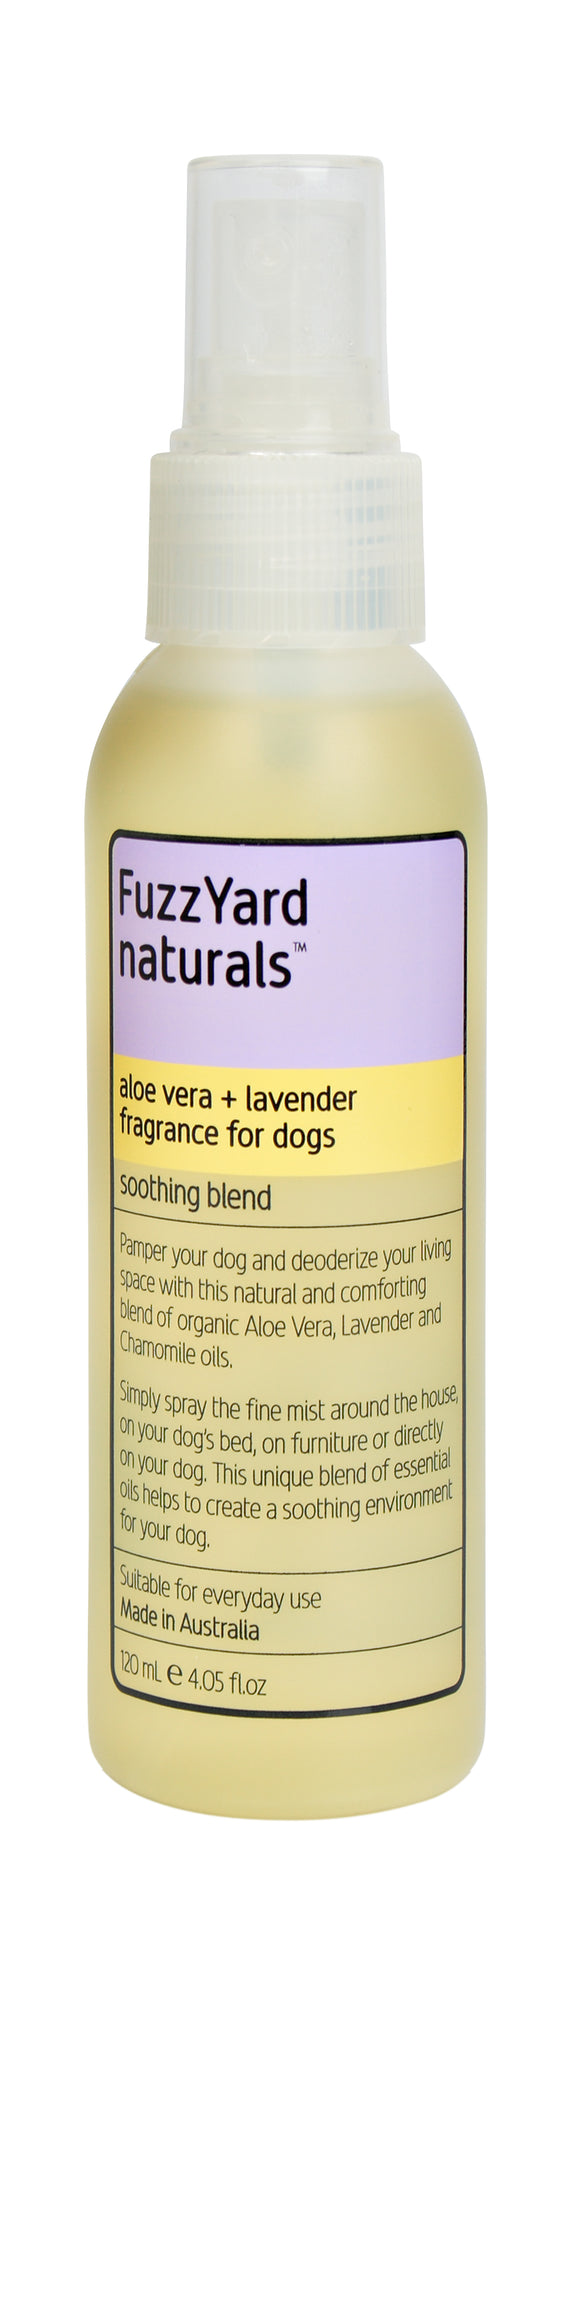 FuzzYard Aloe Vera + Lavender Soothing Spray, Fragrance For Dogs